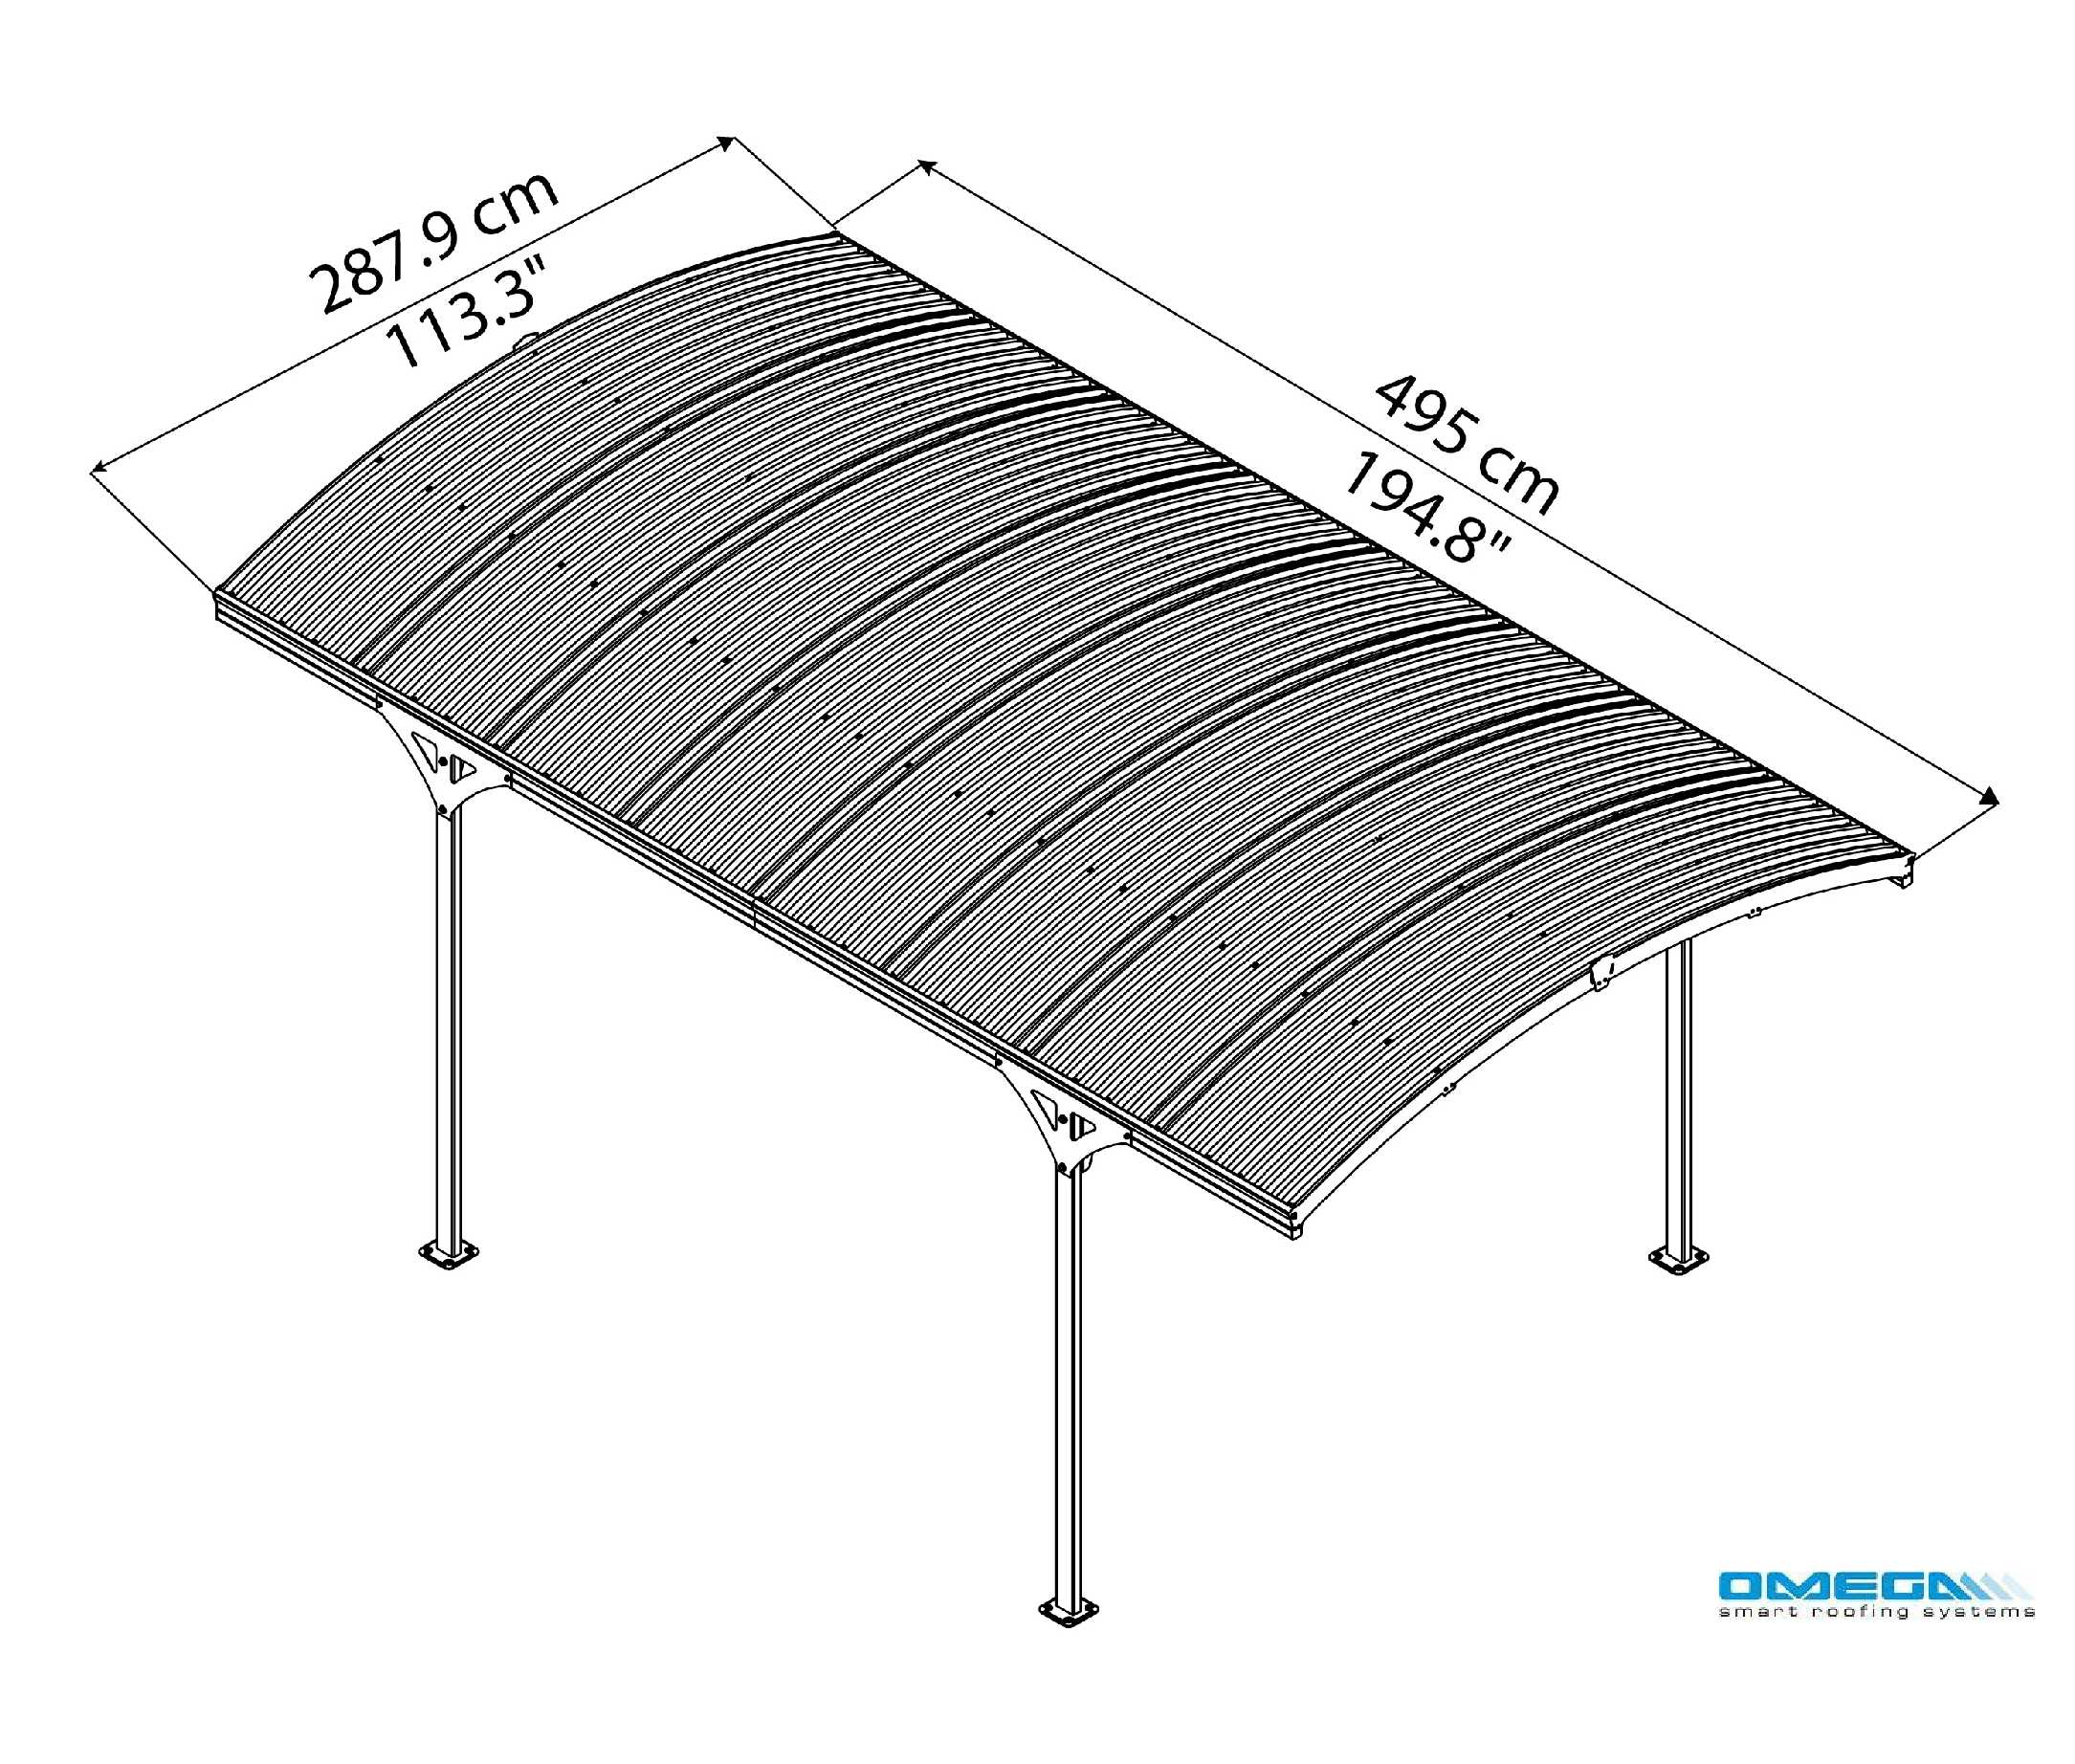 Atlas 5000 Curved Freestanding Canopy 4950 x 2879mm from Omega Build